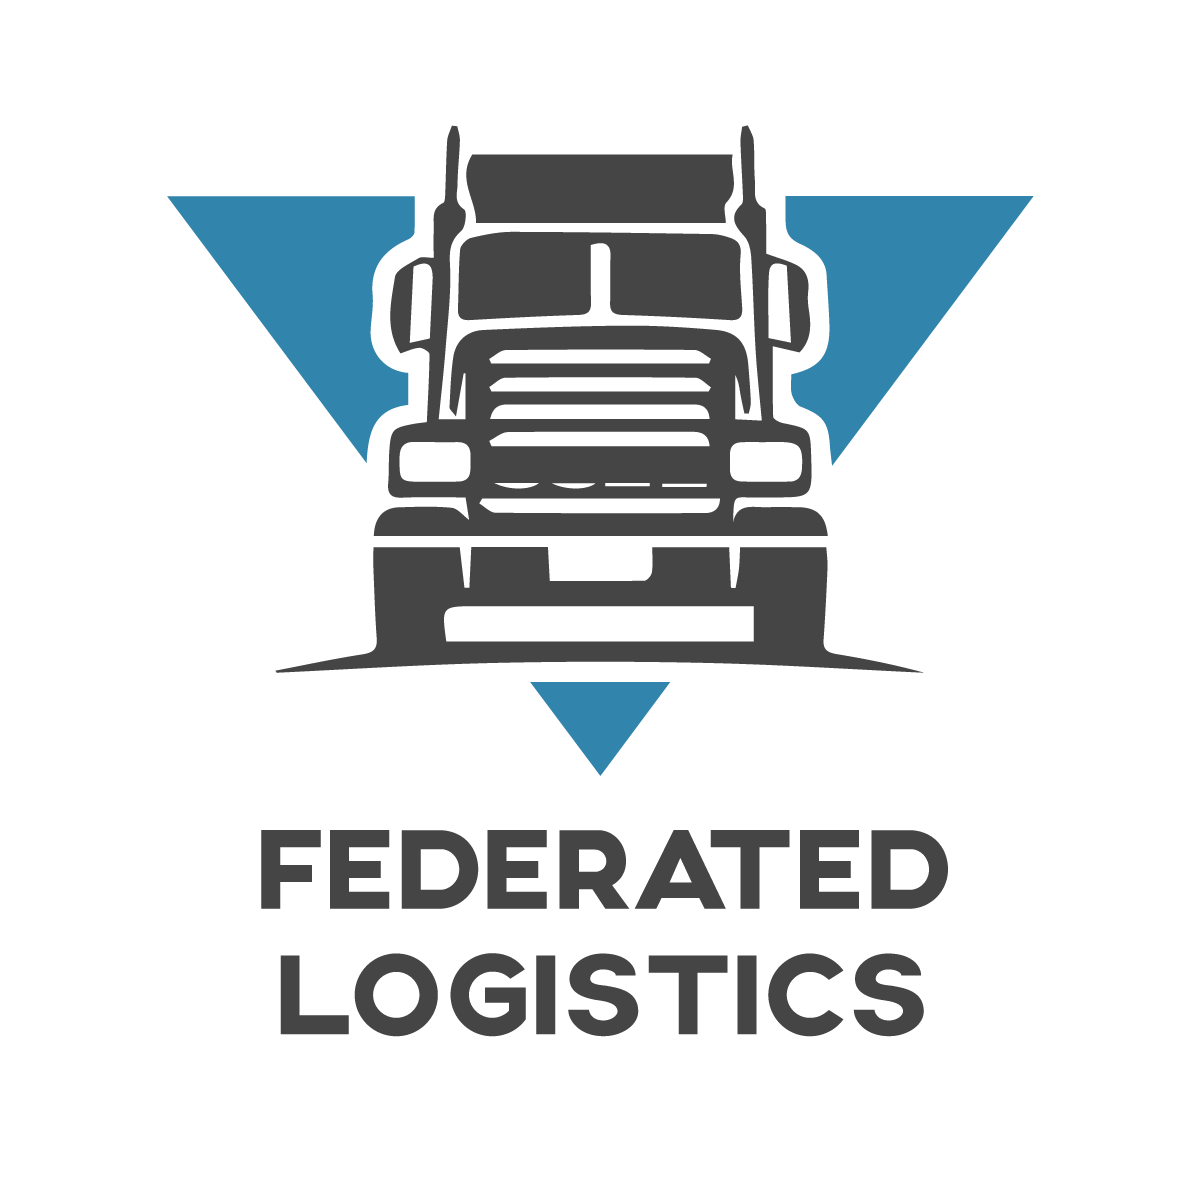 Federated Logistics_transparent